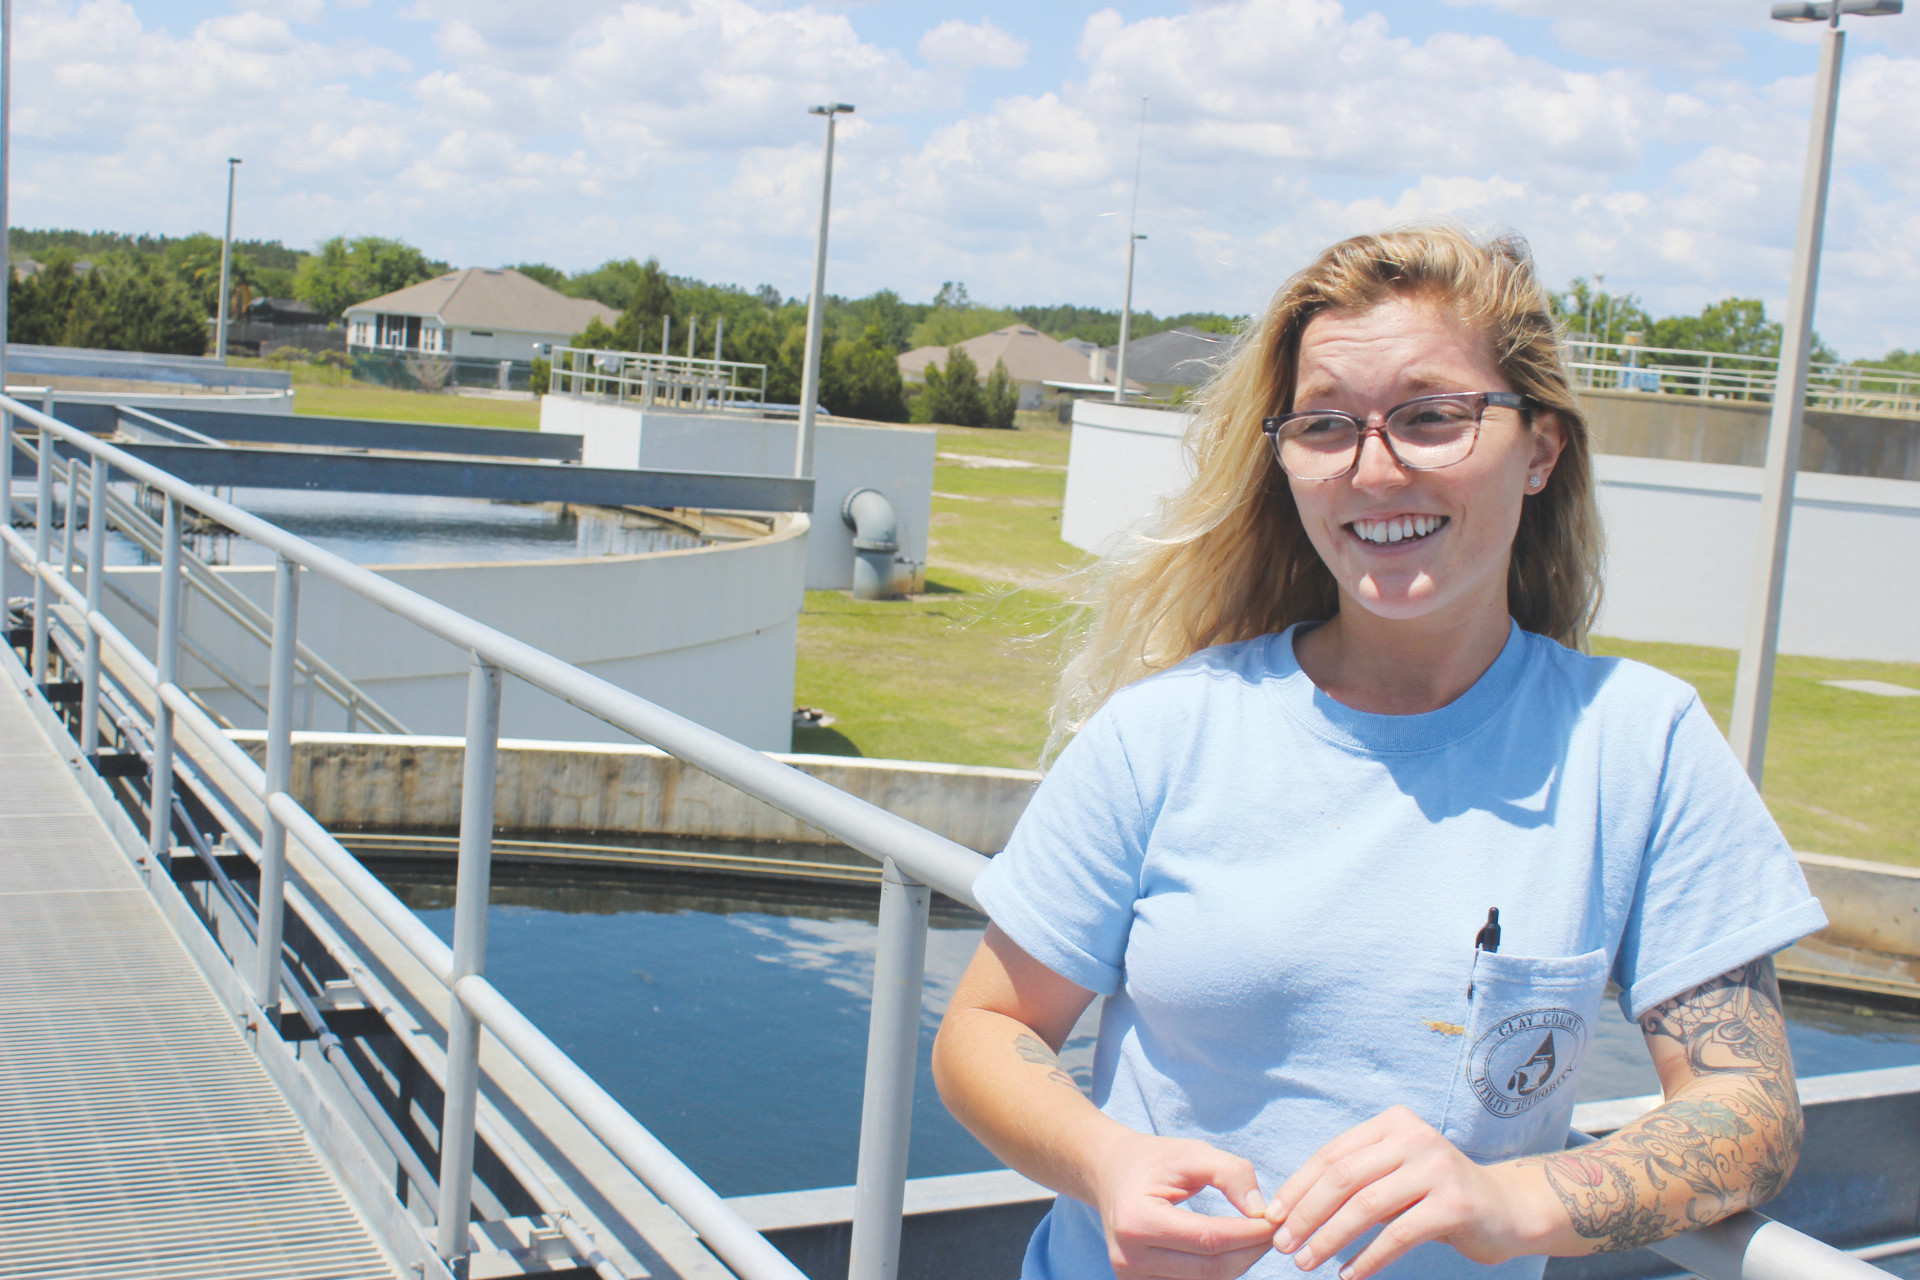 Lindsey Estevez stands overlooking a water treatment tank at the Spencer's Crossing wastewater plant in Oakleaf. She said she would have never learned about what is now her career path if not for an internship designed to entice a younger generation into a greying workforce.